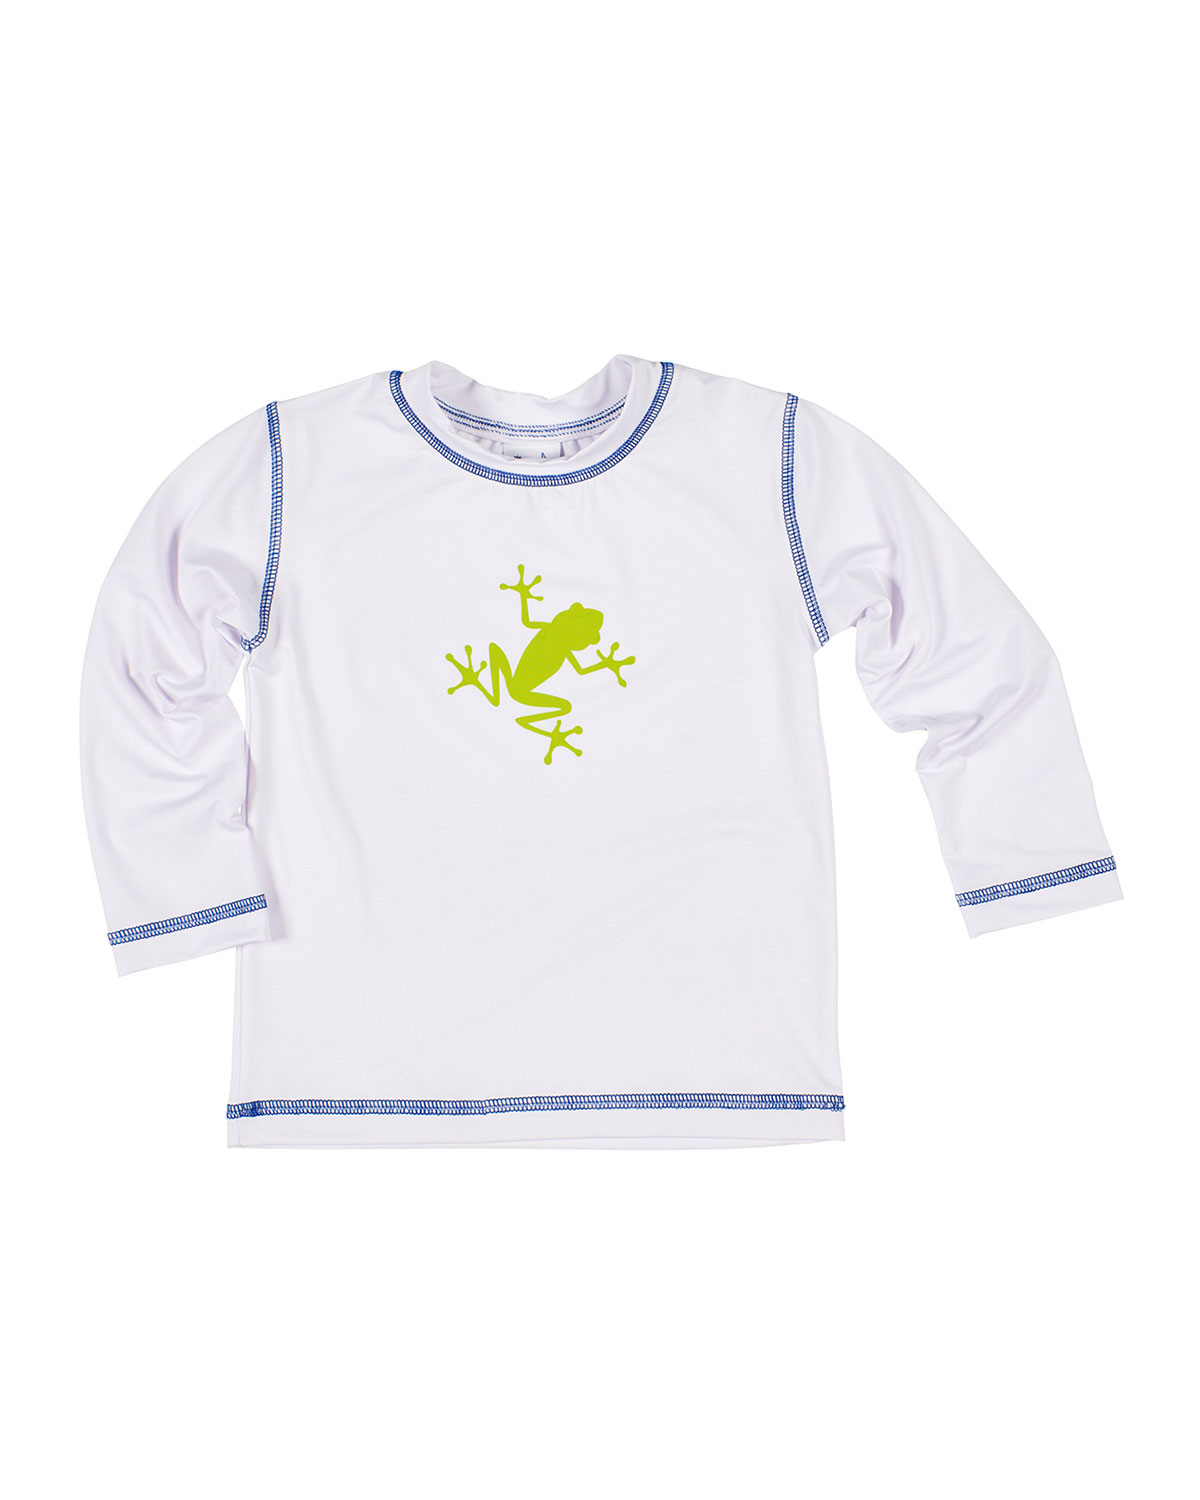 Florence Eiseman Boy's Frog Screen Printed Rash Guard, Size 4T-4